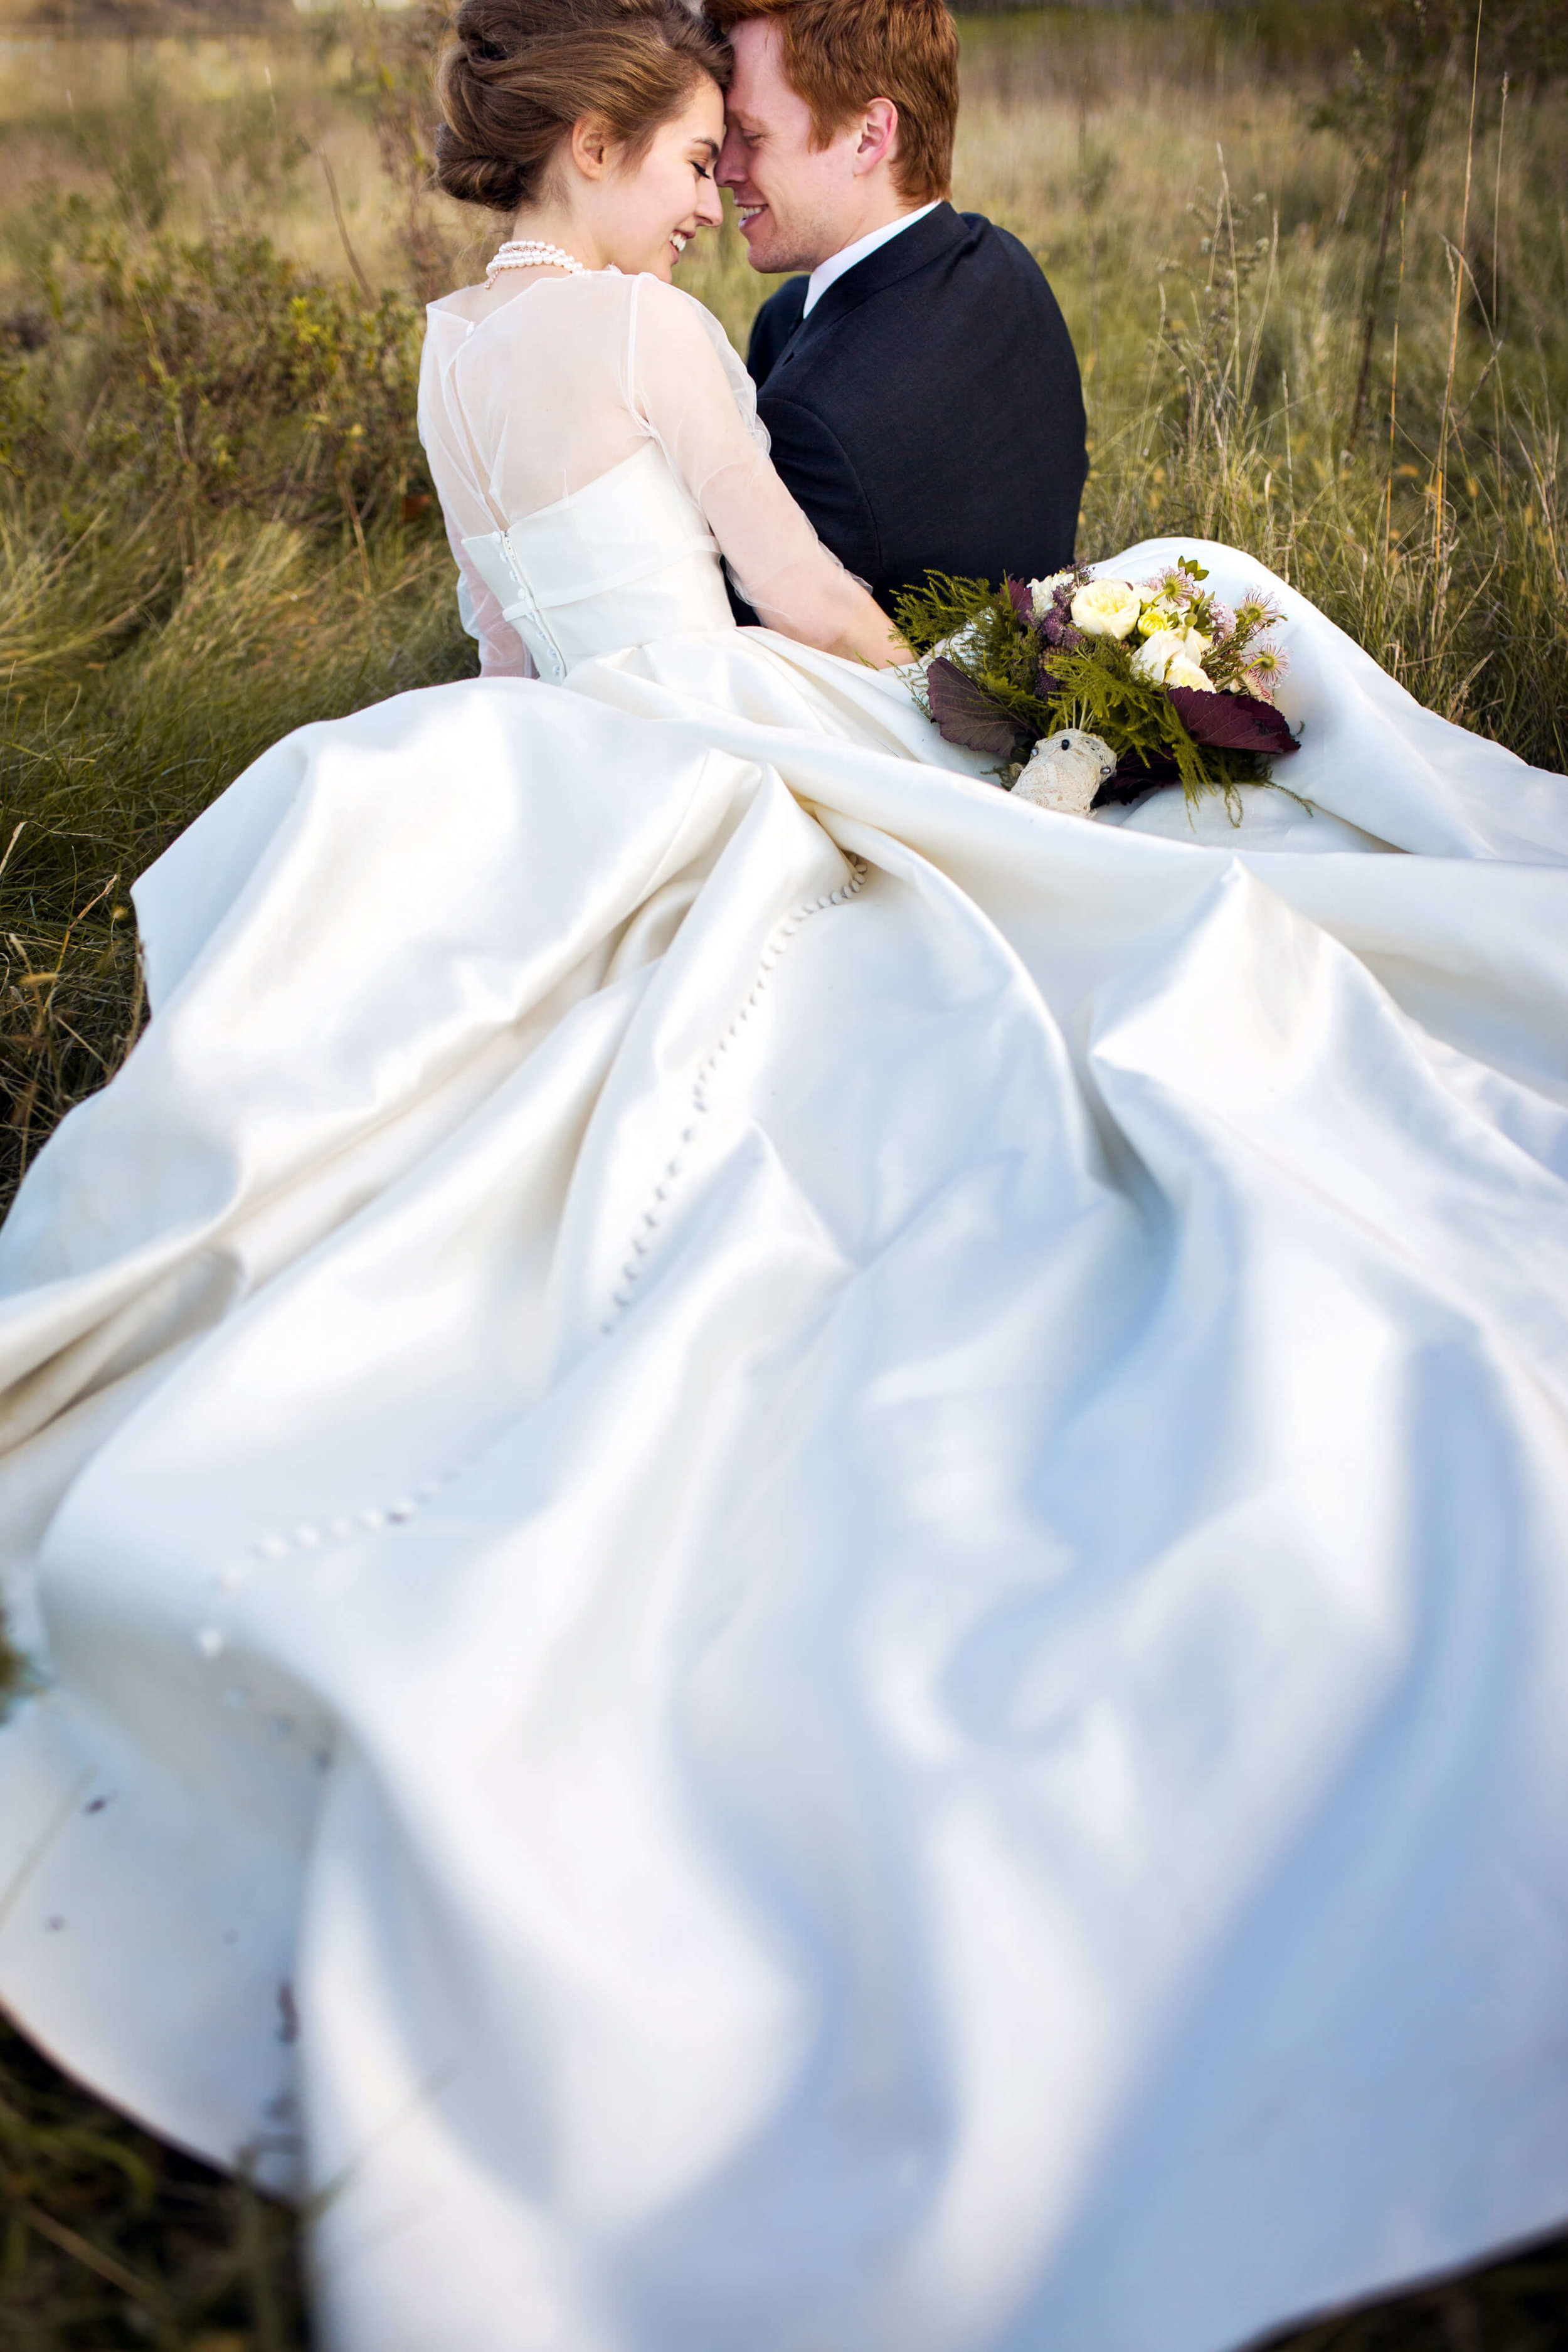 Studio KH Minneapolis wedding photographer | sheer sleeved wedding dress | laying down in the field with large full gown | buttons to the ground | Sixpence Evens & Planning